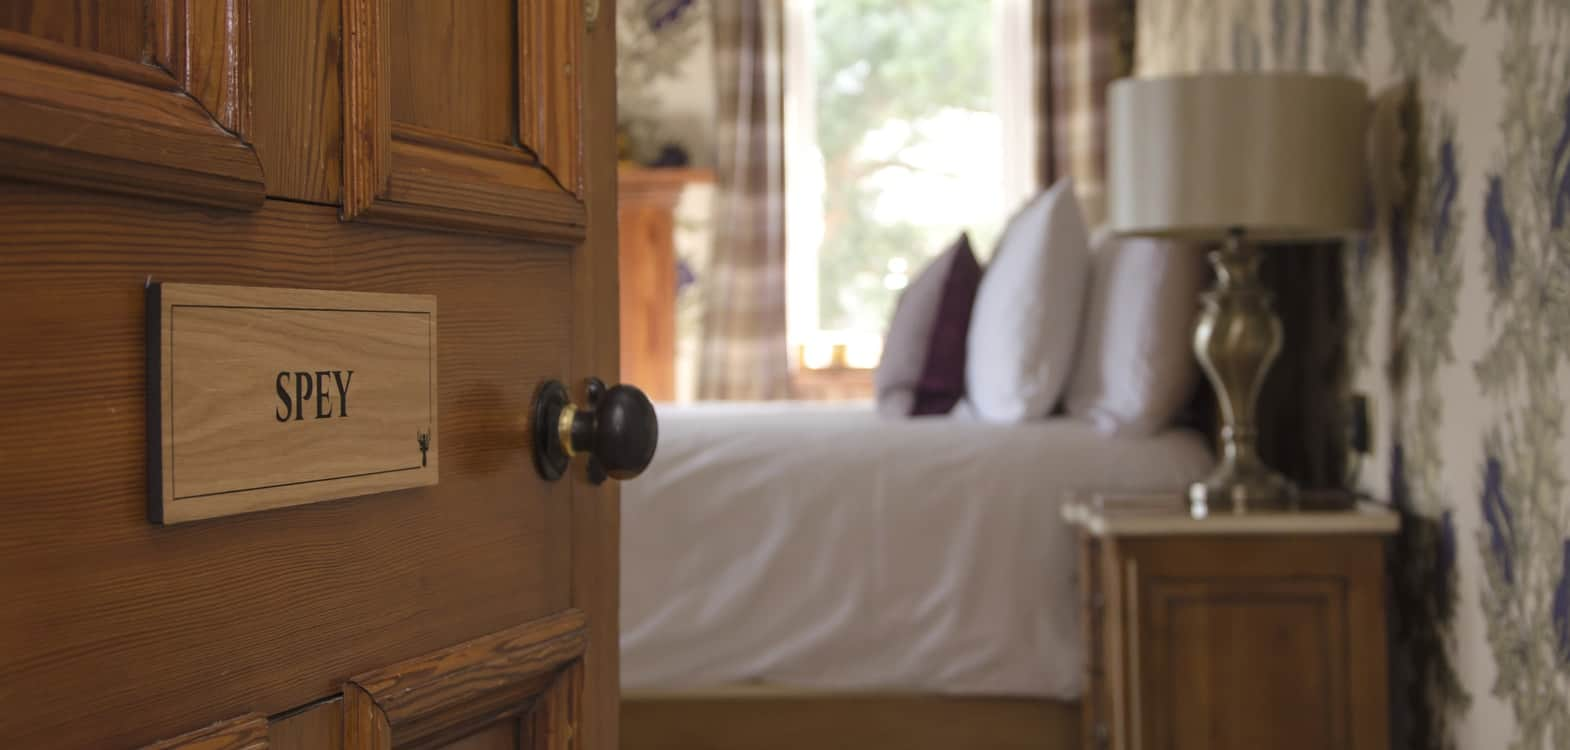 Open door with Spey door label leading into the room where there is a bed made up with white bedding